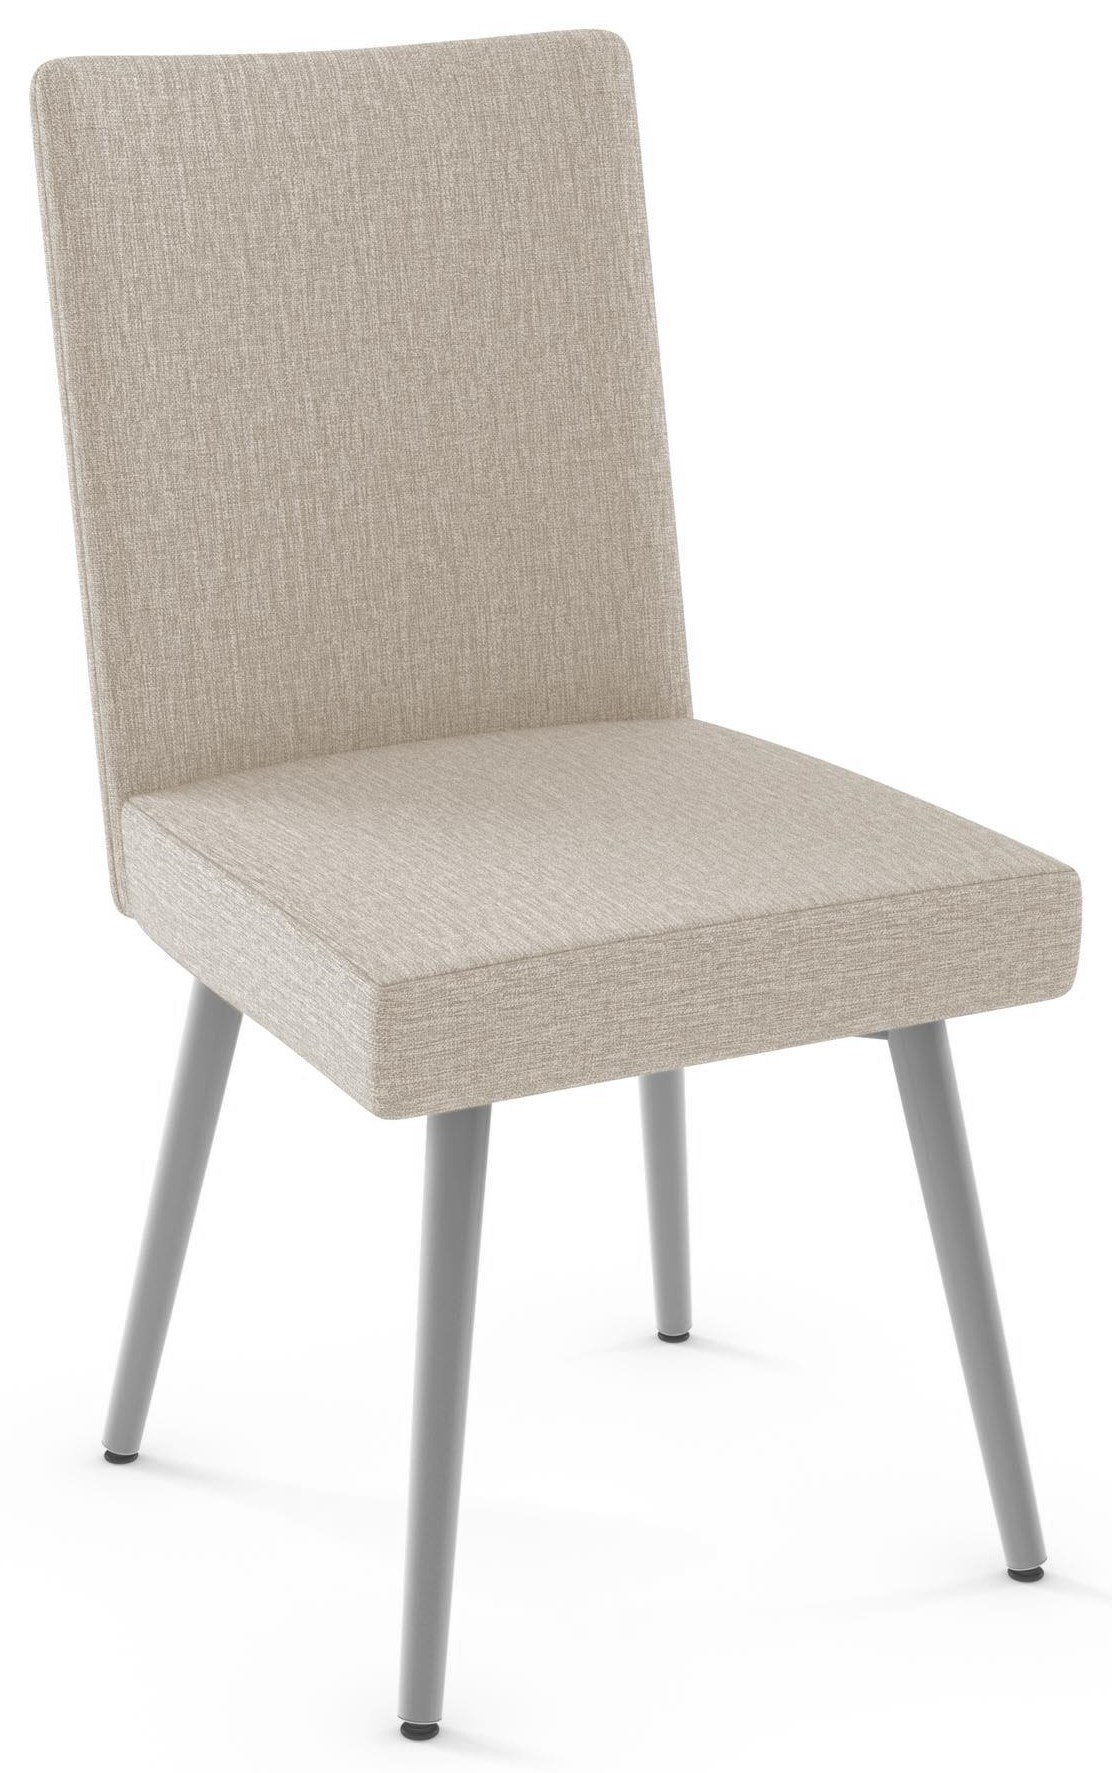 Webber Chair by Amisco at Red Knot